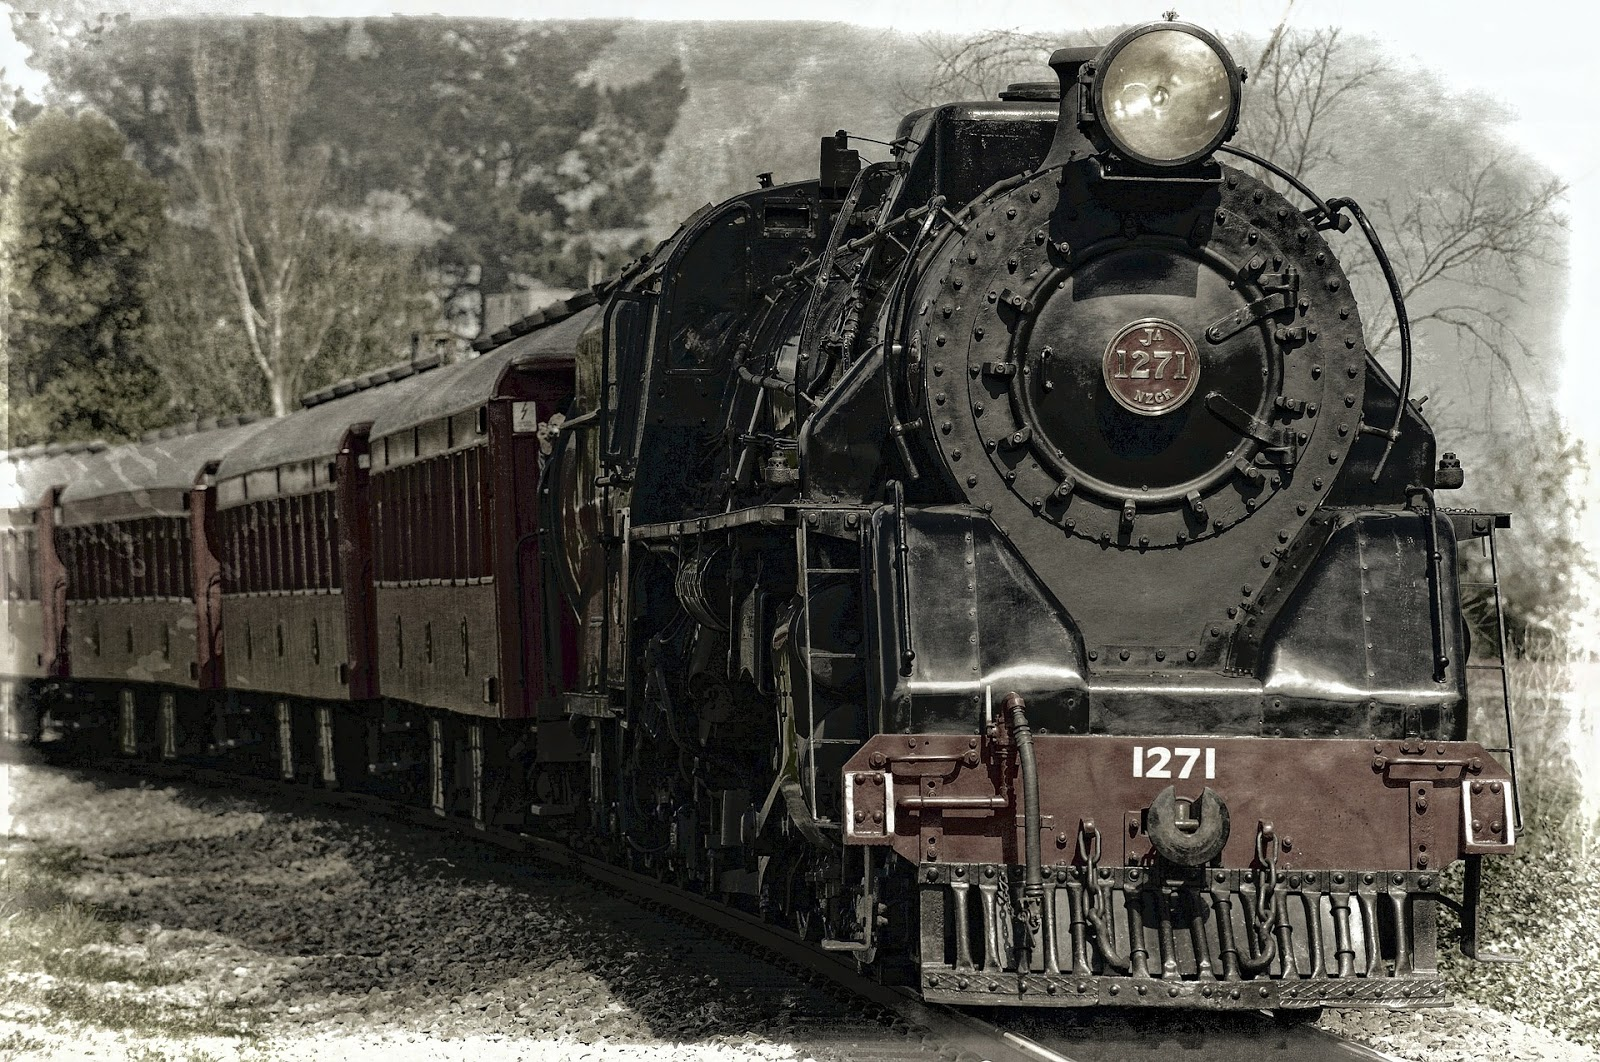 old-fashioned locomotive traveling forward on track to illustrate blog post about hitler's personal train